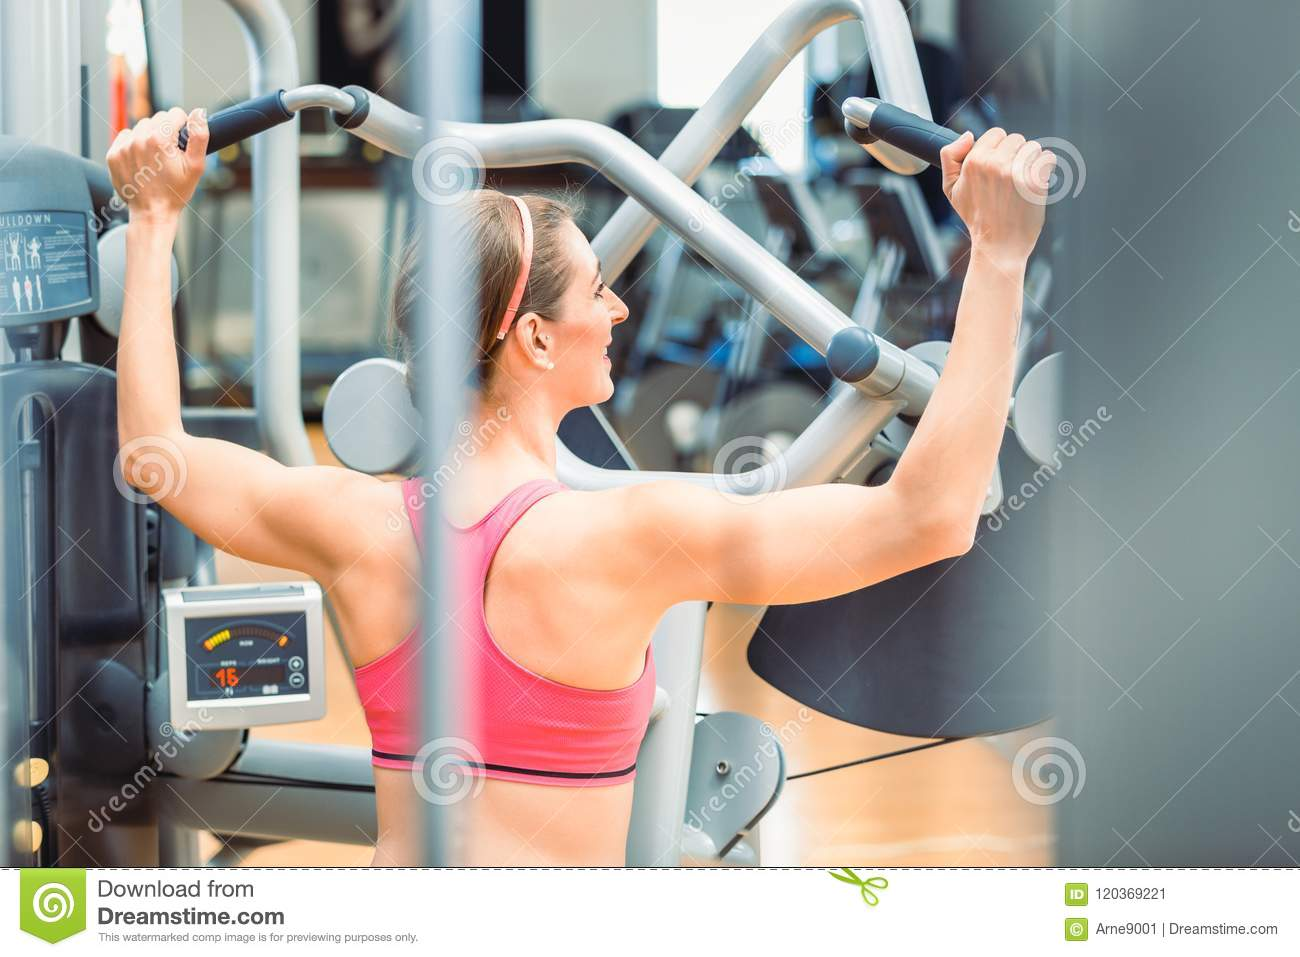 Rear View Of A Fit Woman With Toned Arms And Back Exercising At The Gym Stock Image Image Of Health Shoulders 120369221 7 day push up challenge. https www dreamstime com rear view fit woman toned arms back exercising gym rear view fit woman toned arms back wearing image120369221